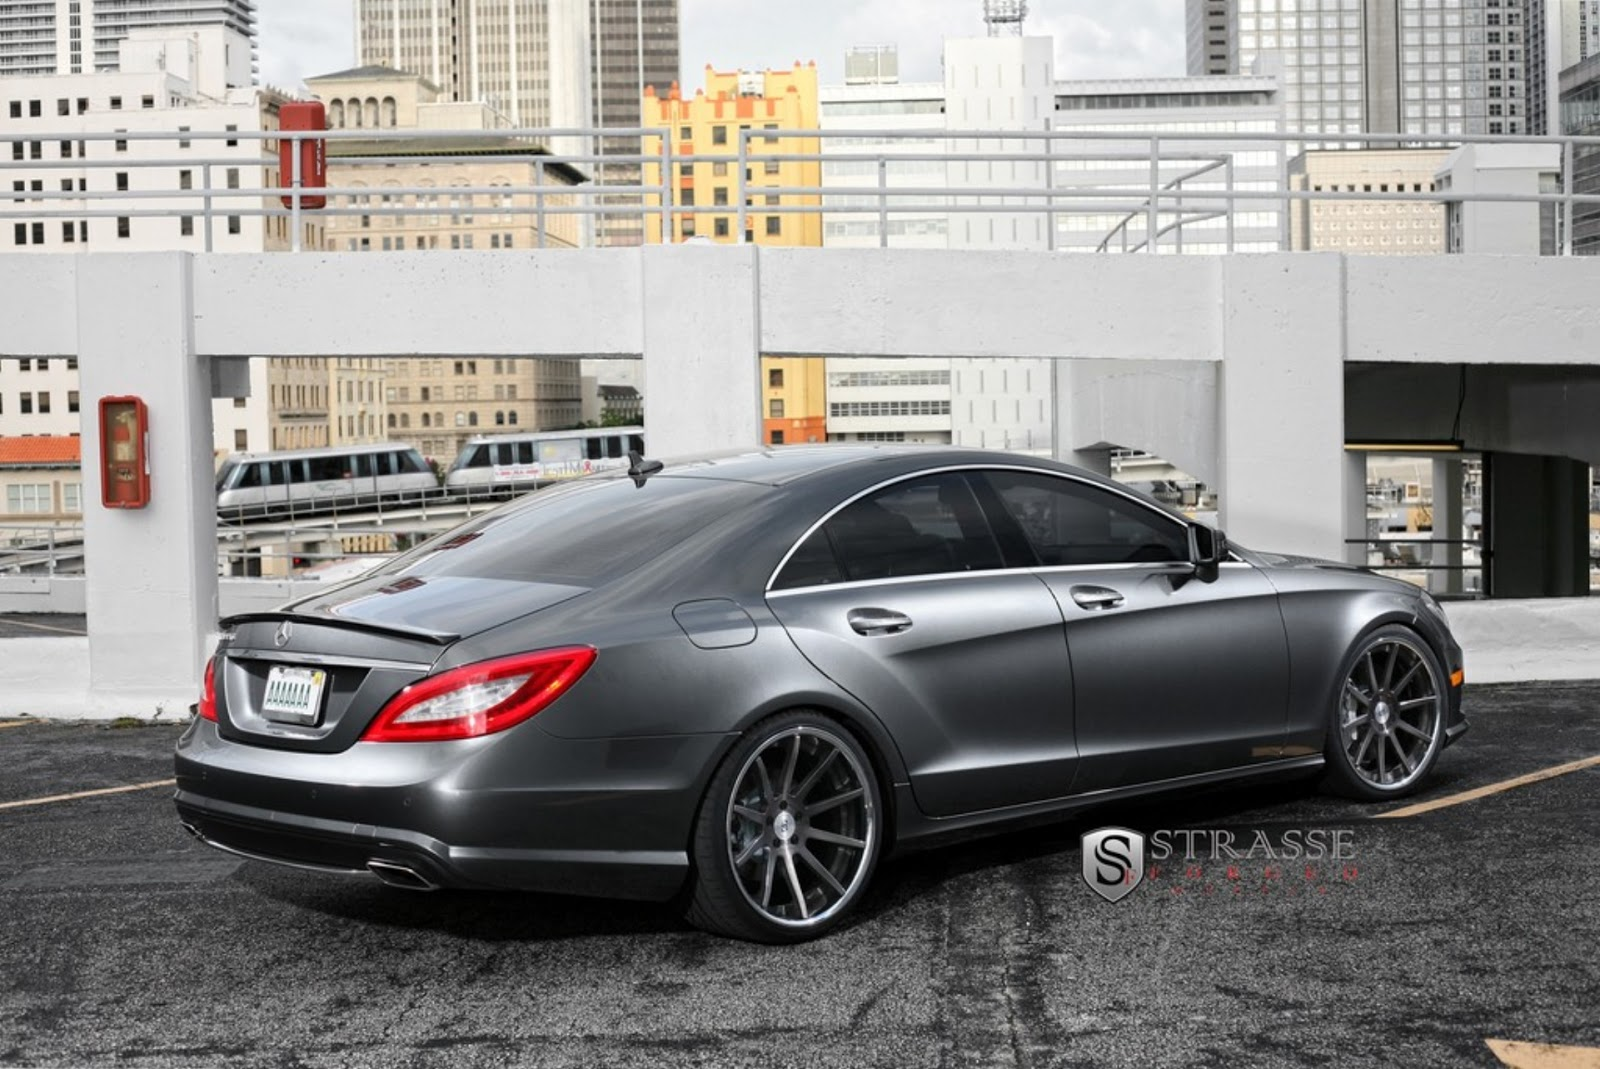 All cars nz 2013 mercedes benz cls550 by strasse forged for 2013 mercedes benz cls550